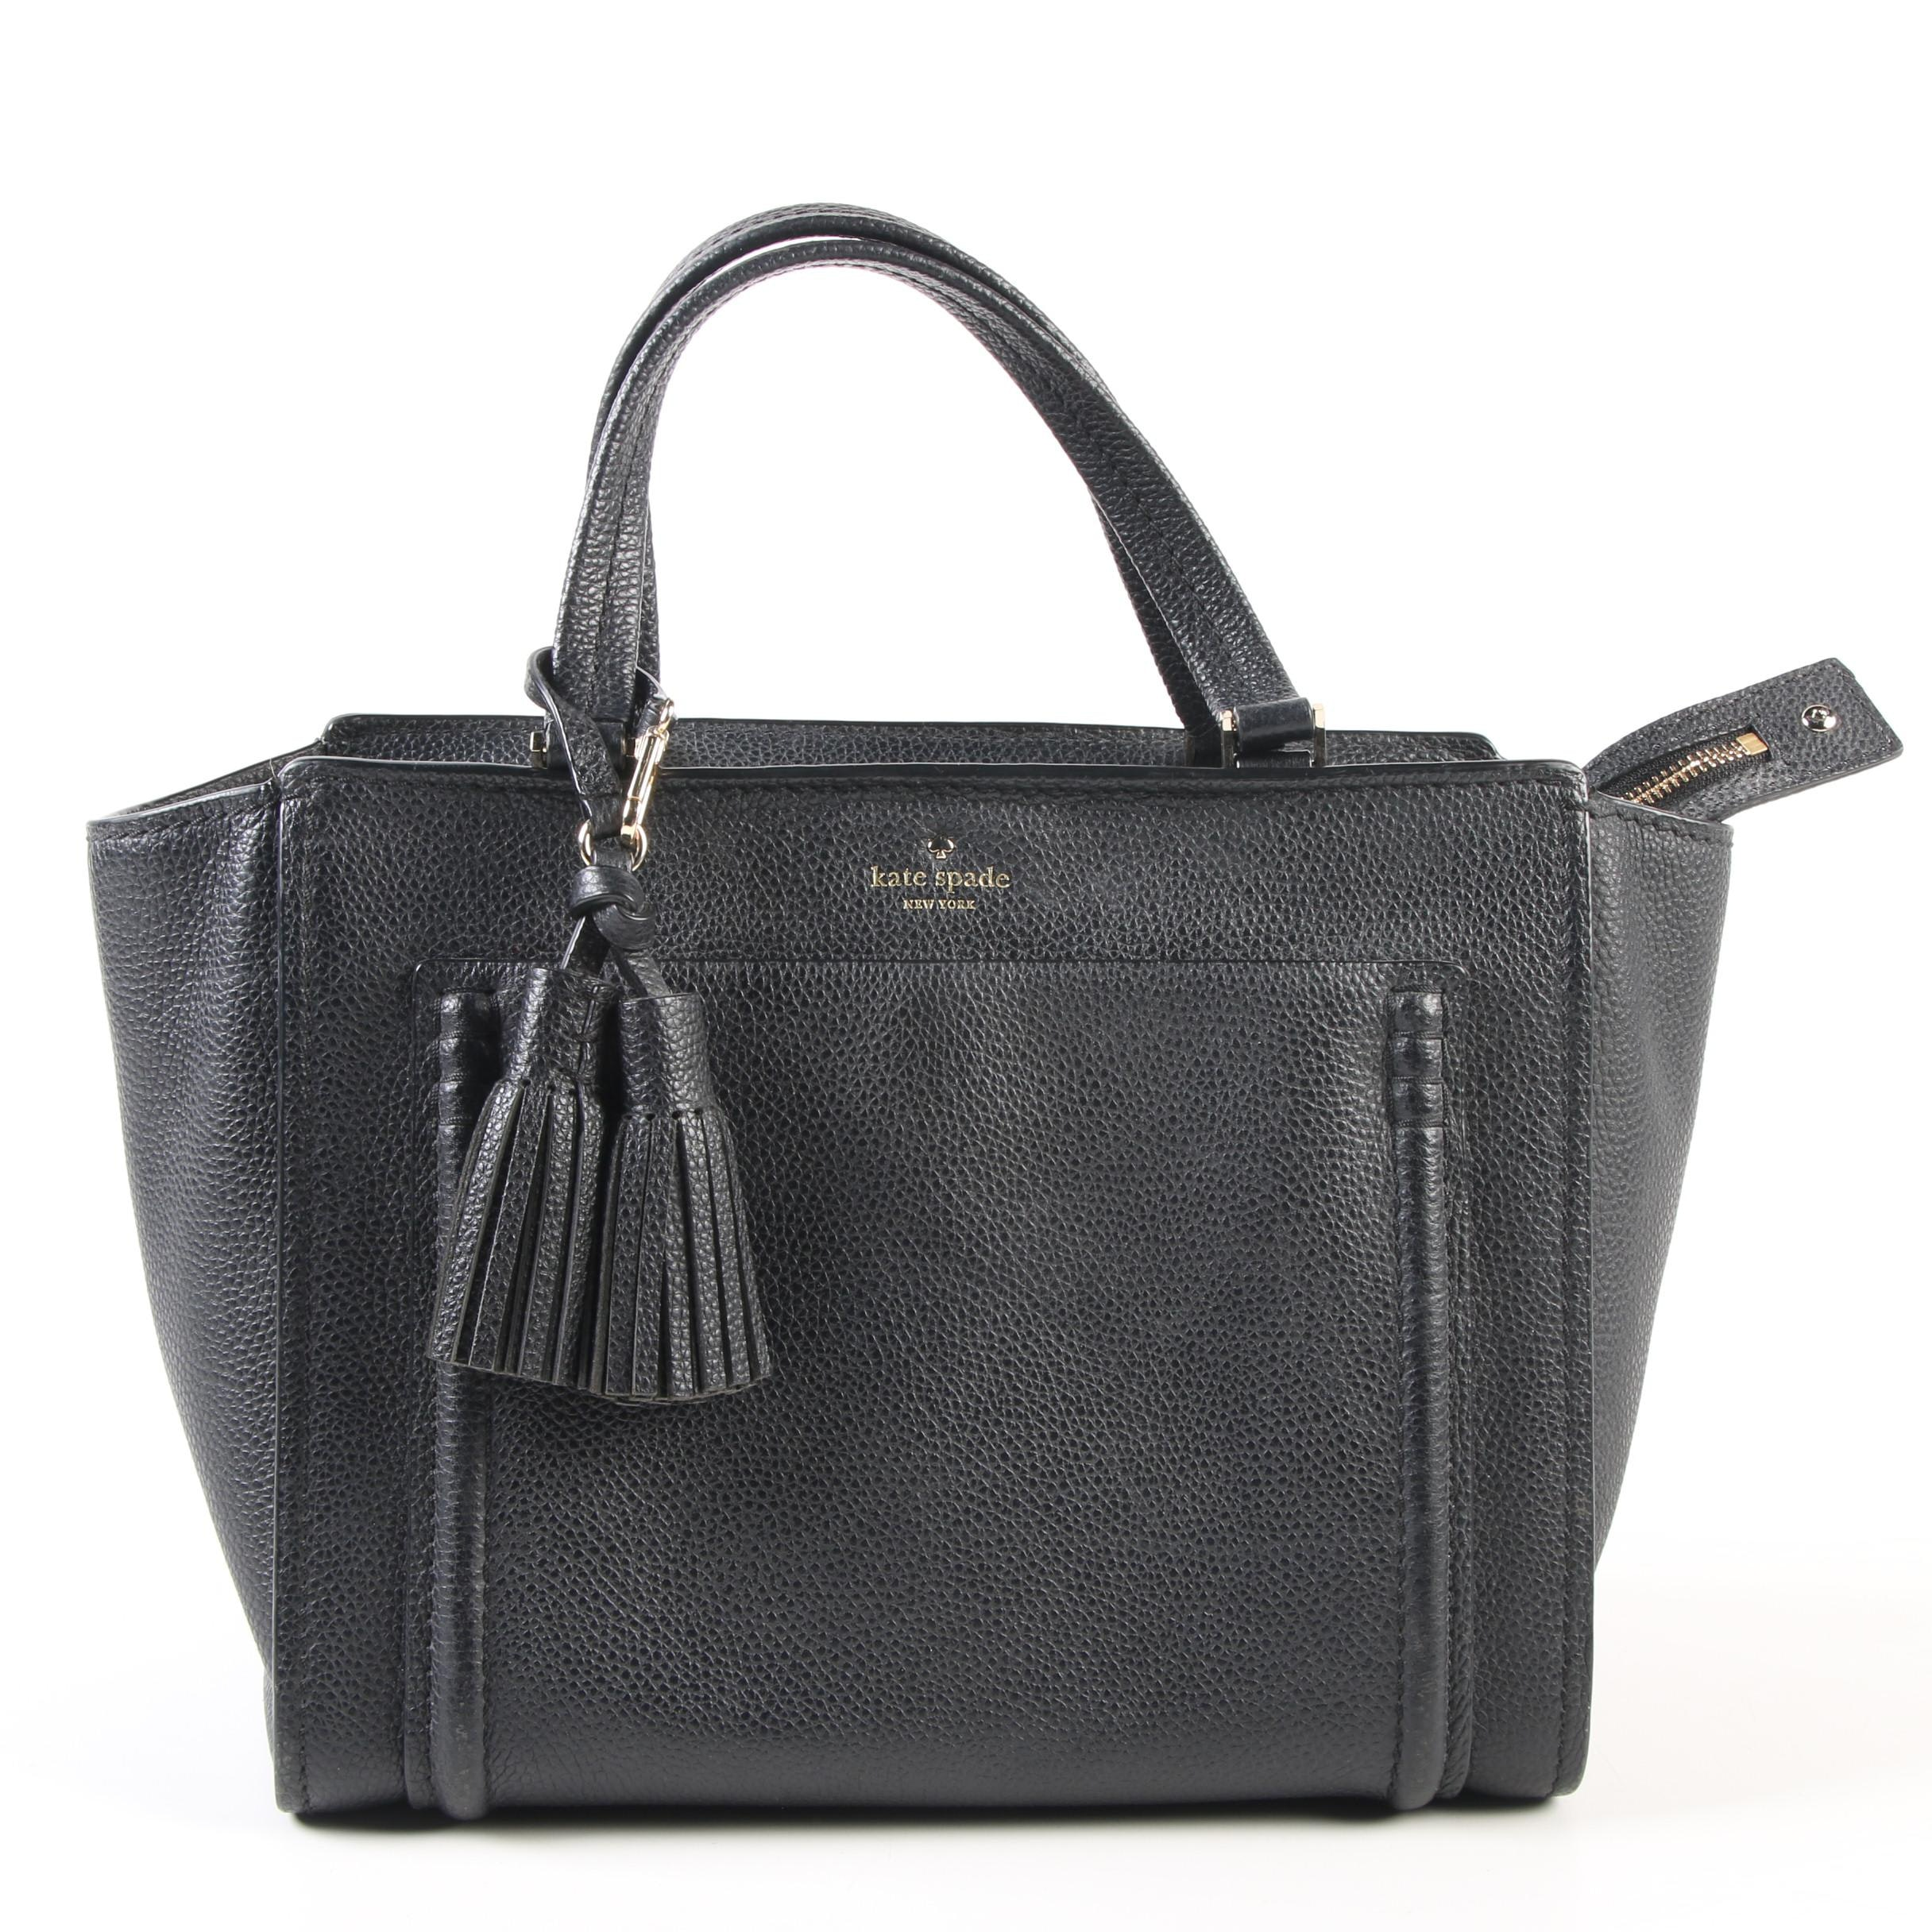 Kate Spade New York Black Pebbled Leather Tote with Tassels